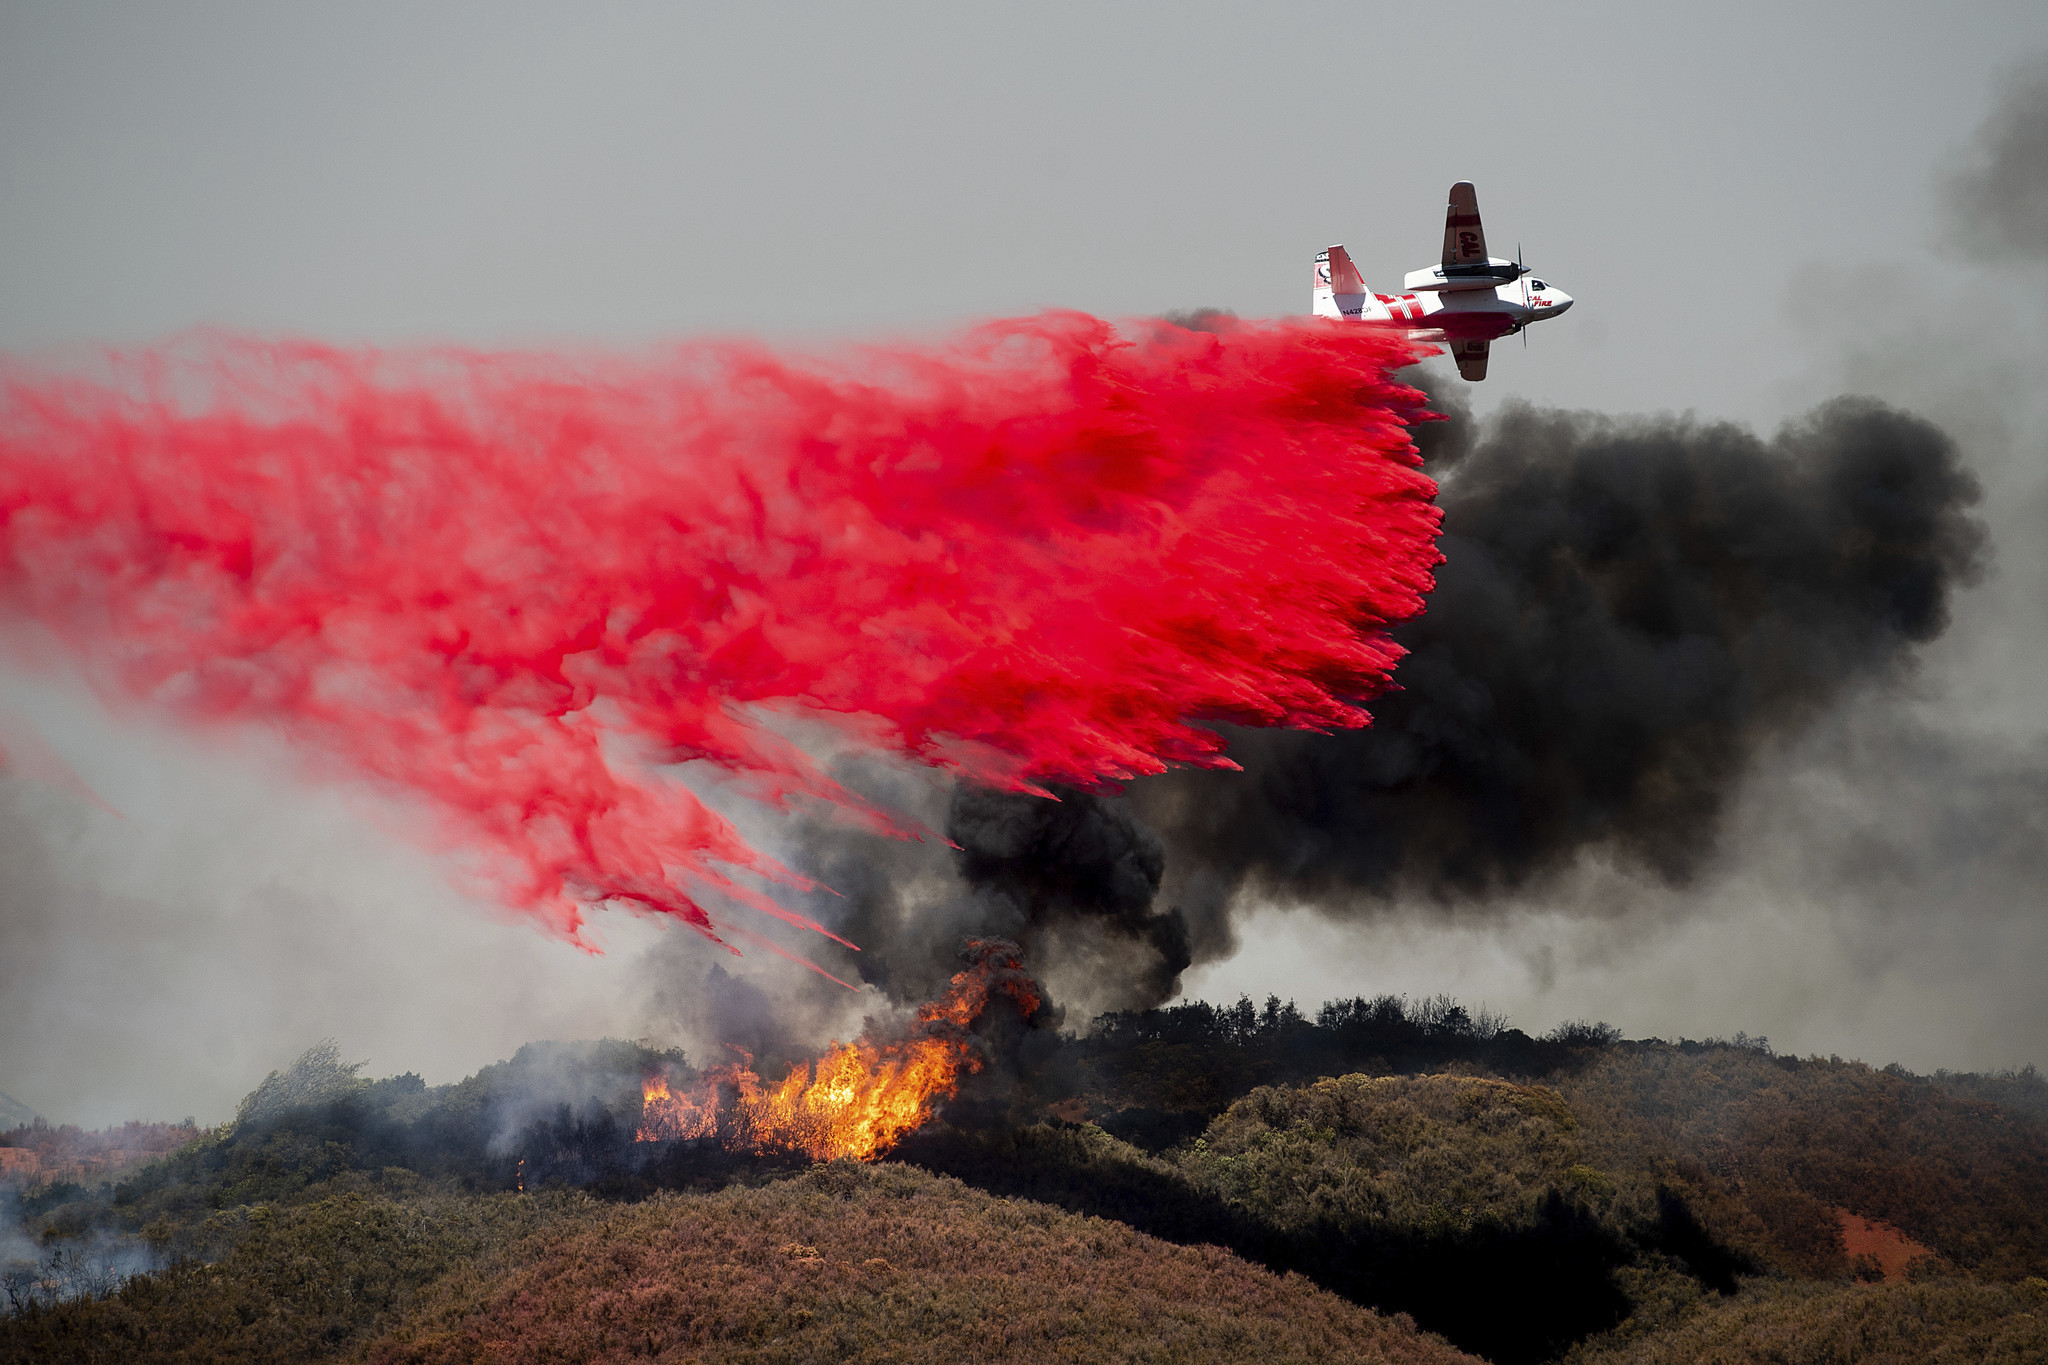 California Wildfire Now 9th Most Destructive In History